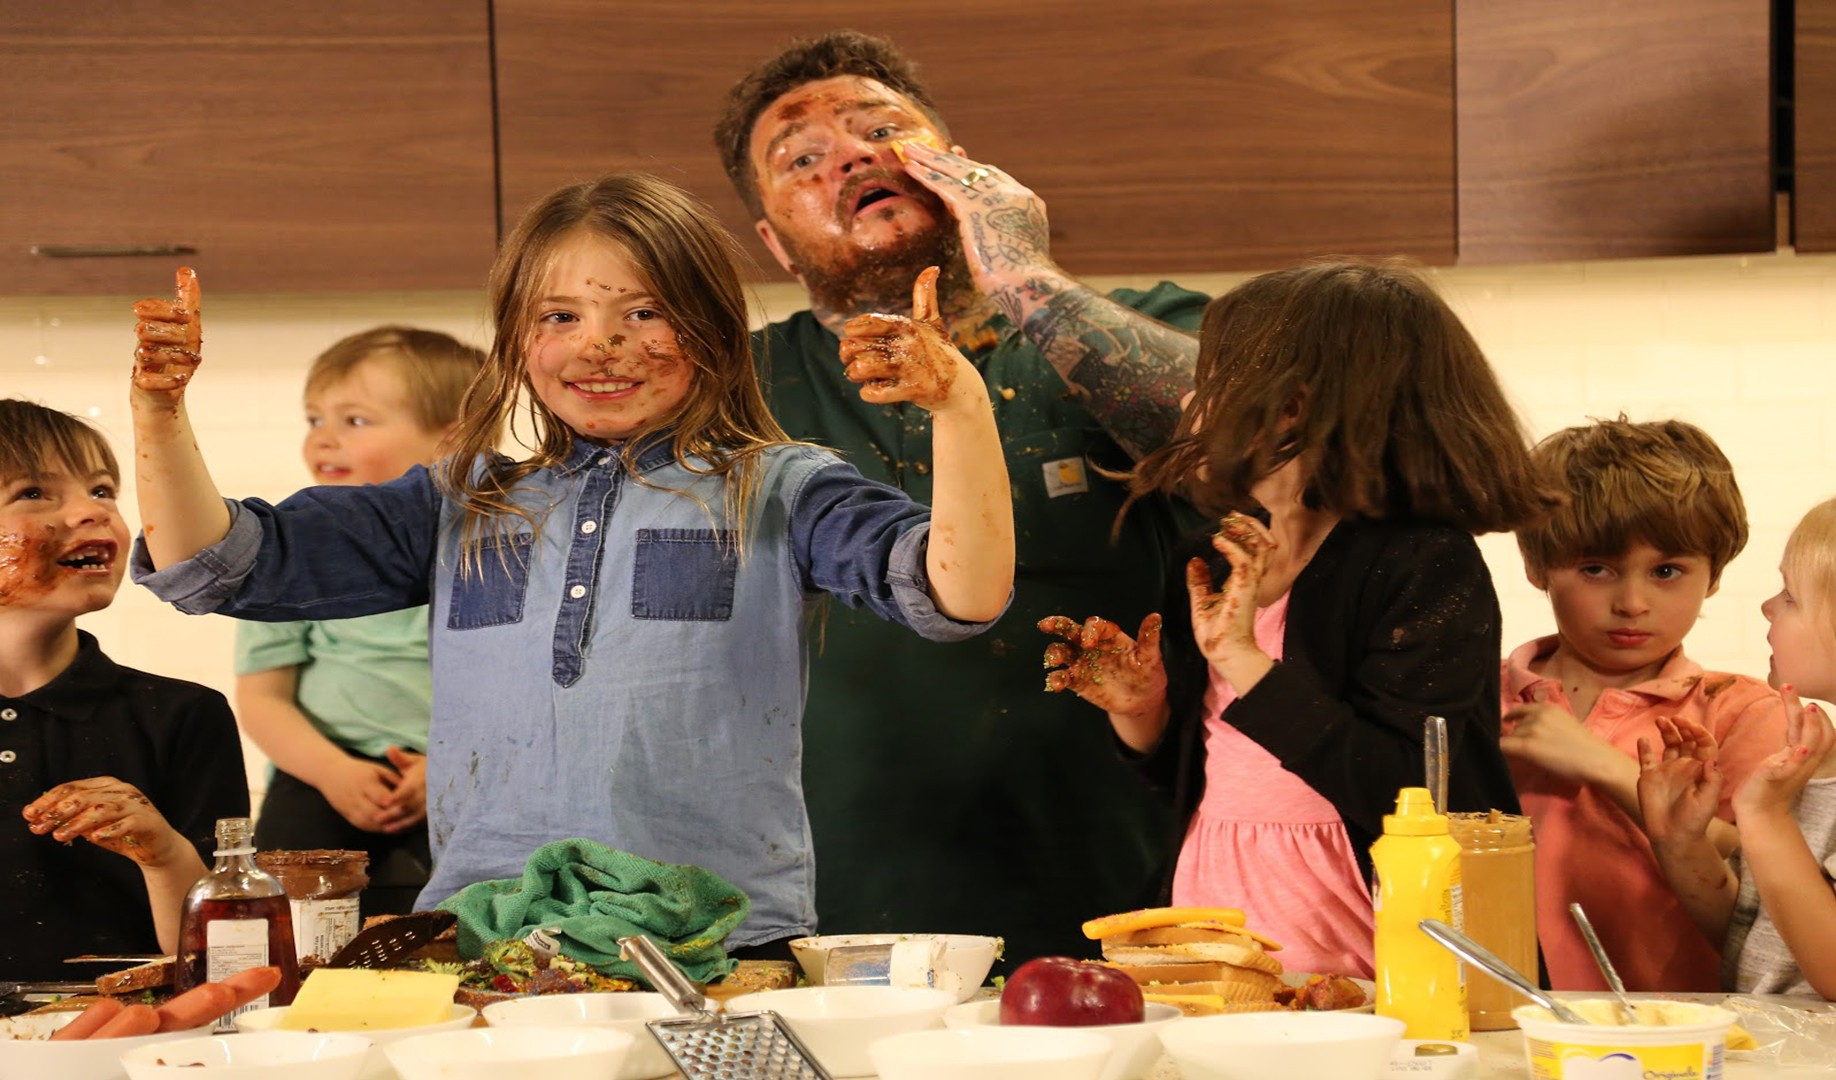 Make Grilled Cheese with Matty Matheson and Kids